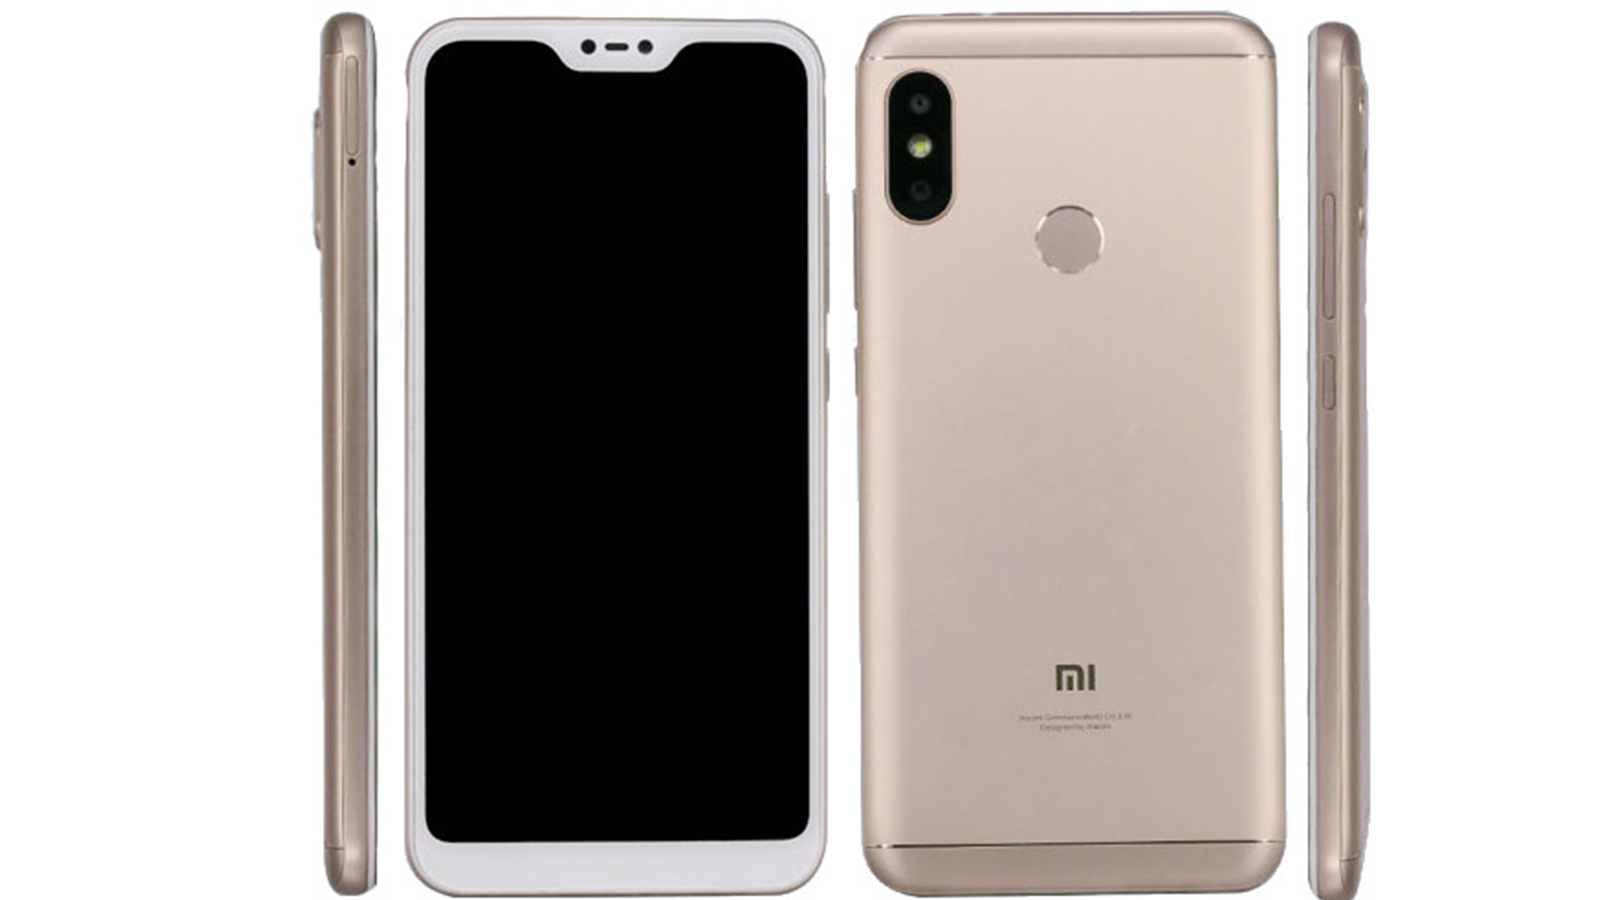 Xiaomi Redmi 6, Redmi 6A launch confirmed for June 12 in China